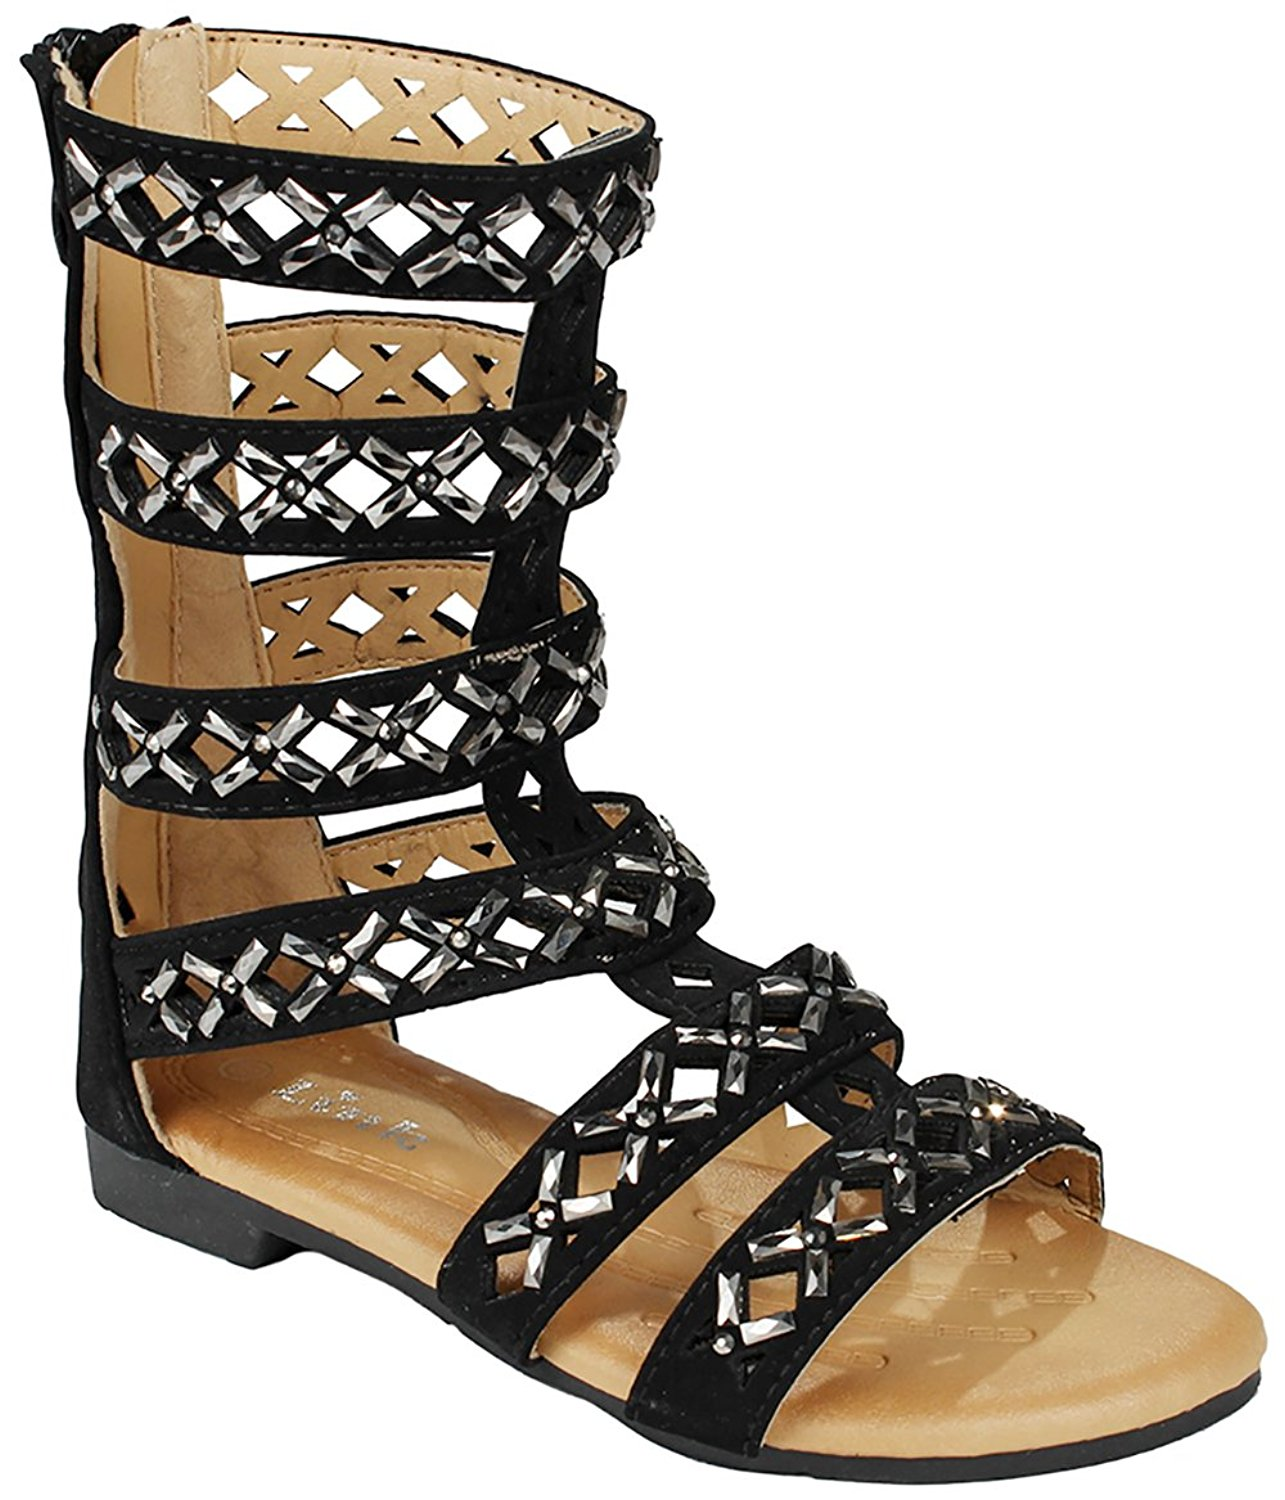 J.J.F Shoes Girls Kids Cut Out Rhinestone Gladiator Strappy Dress Sandals